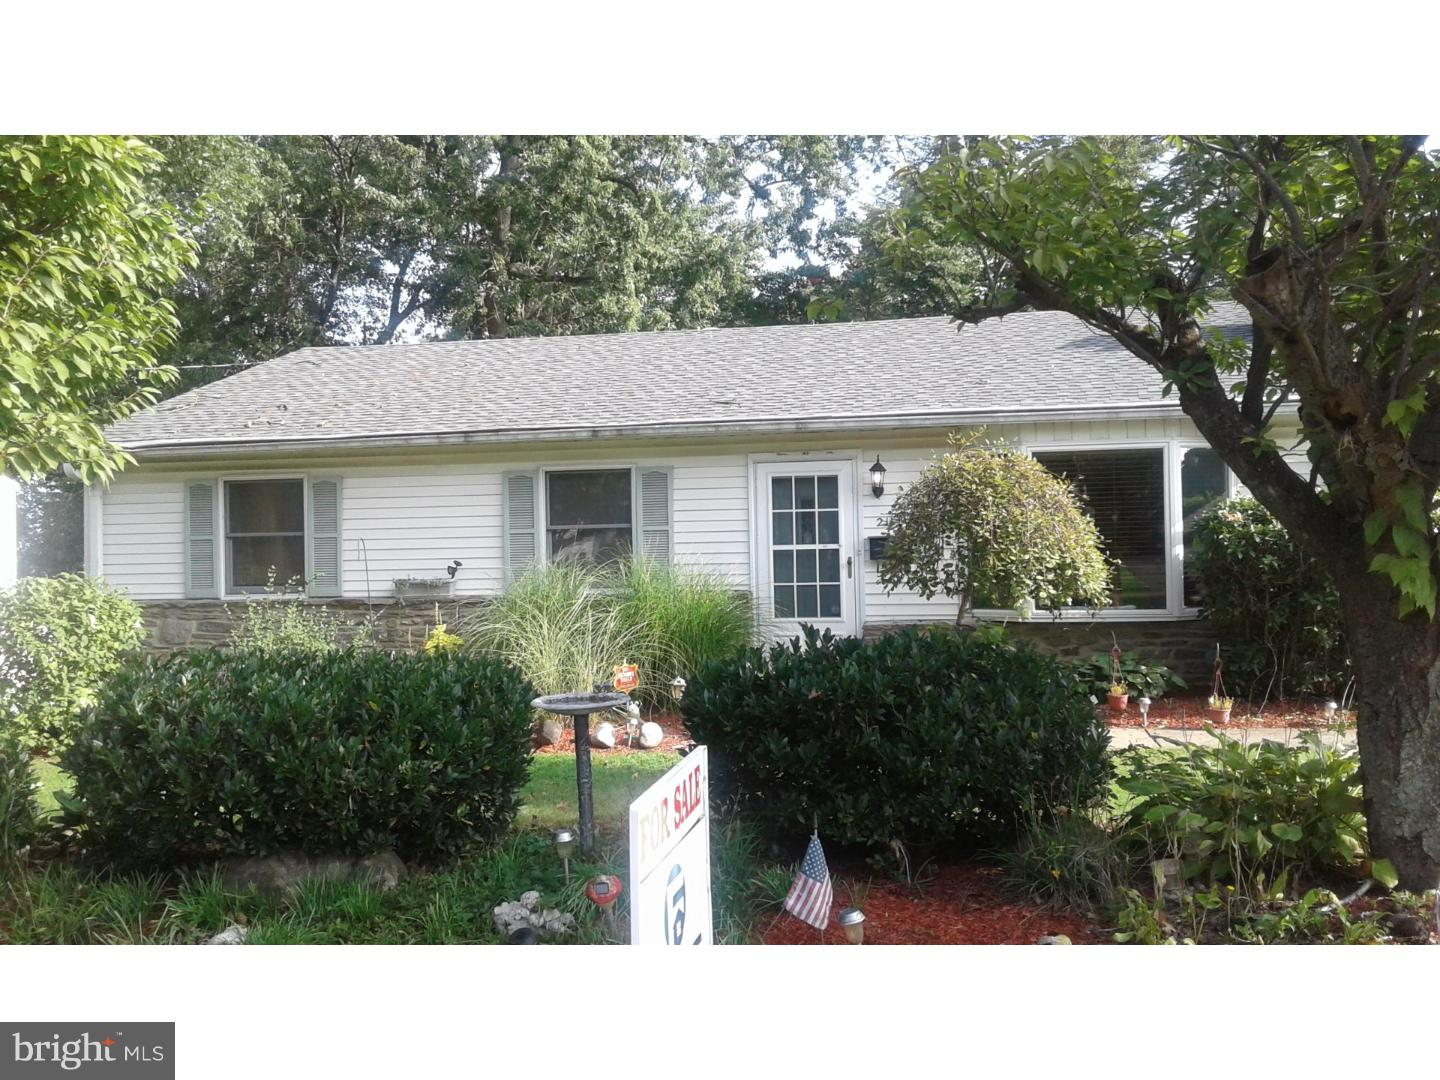 211 FOREST AVENUE, WILLOW GROVE, PA 19090